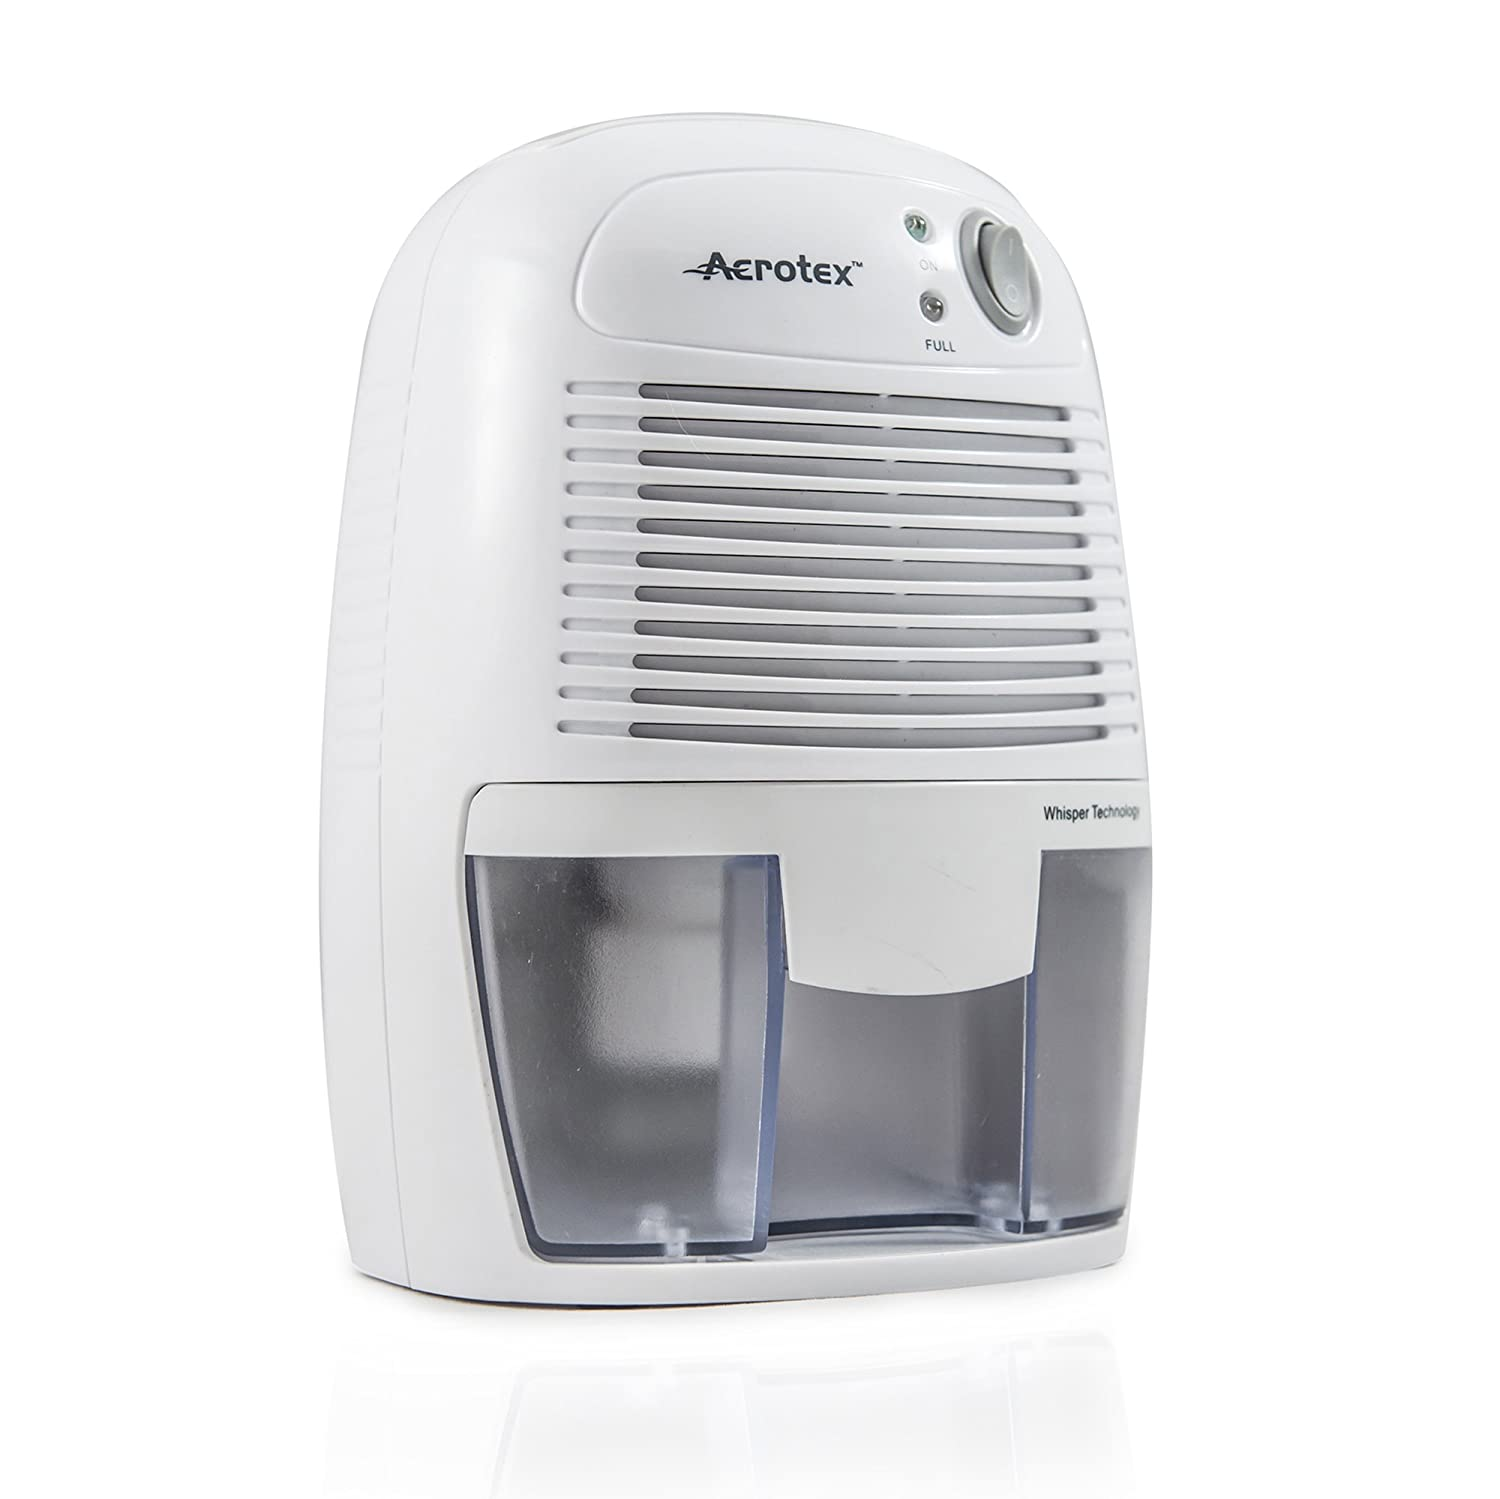 aerotex 500ml compact and portable dehumidifier for damp. Black Bedroom Furniture Sets. Home Design Ideas